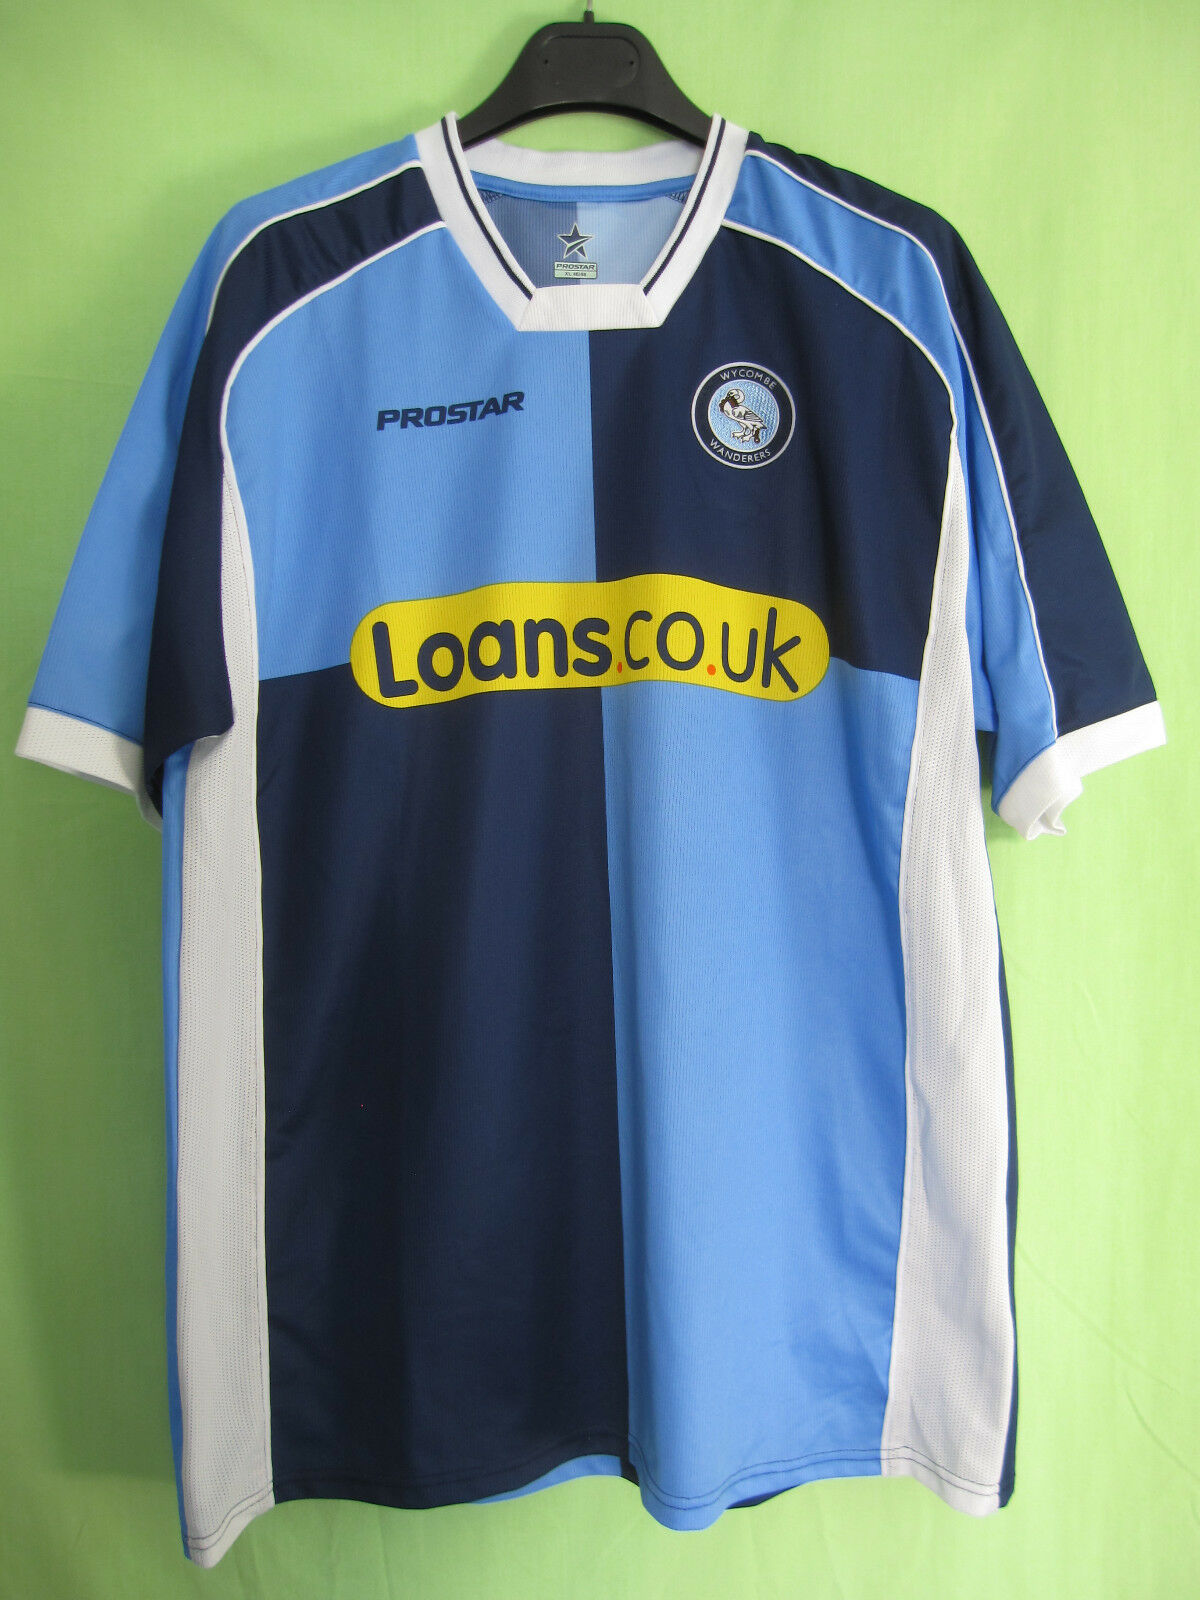 Maillot Wycombe Wanderers Fc Loans Vintage The Chairboys Jersey - XL